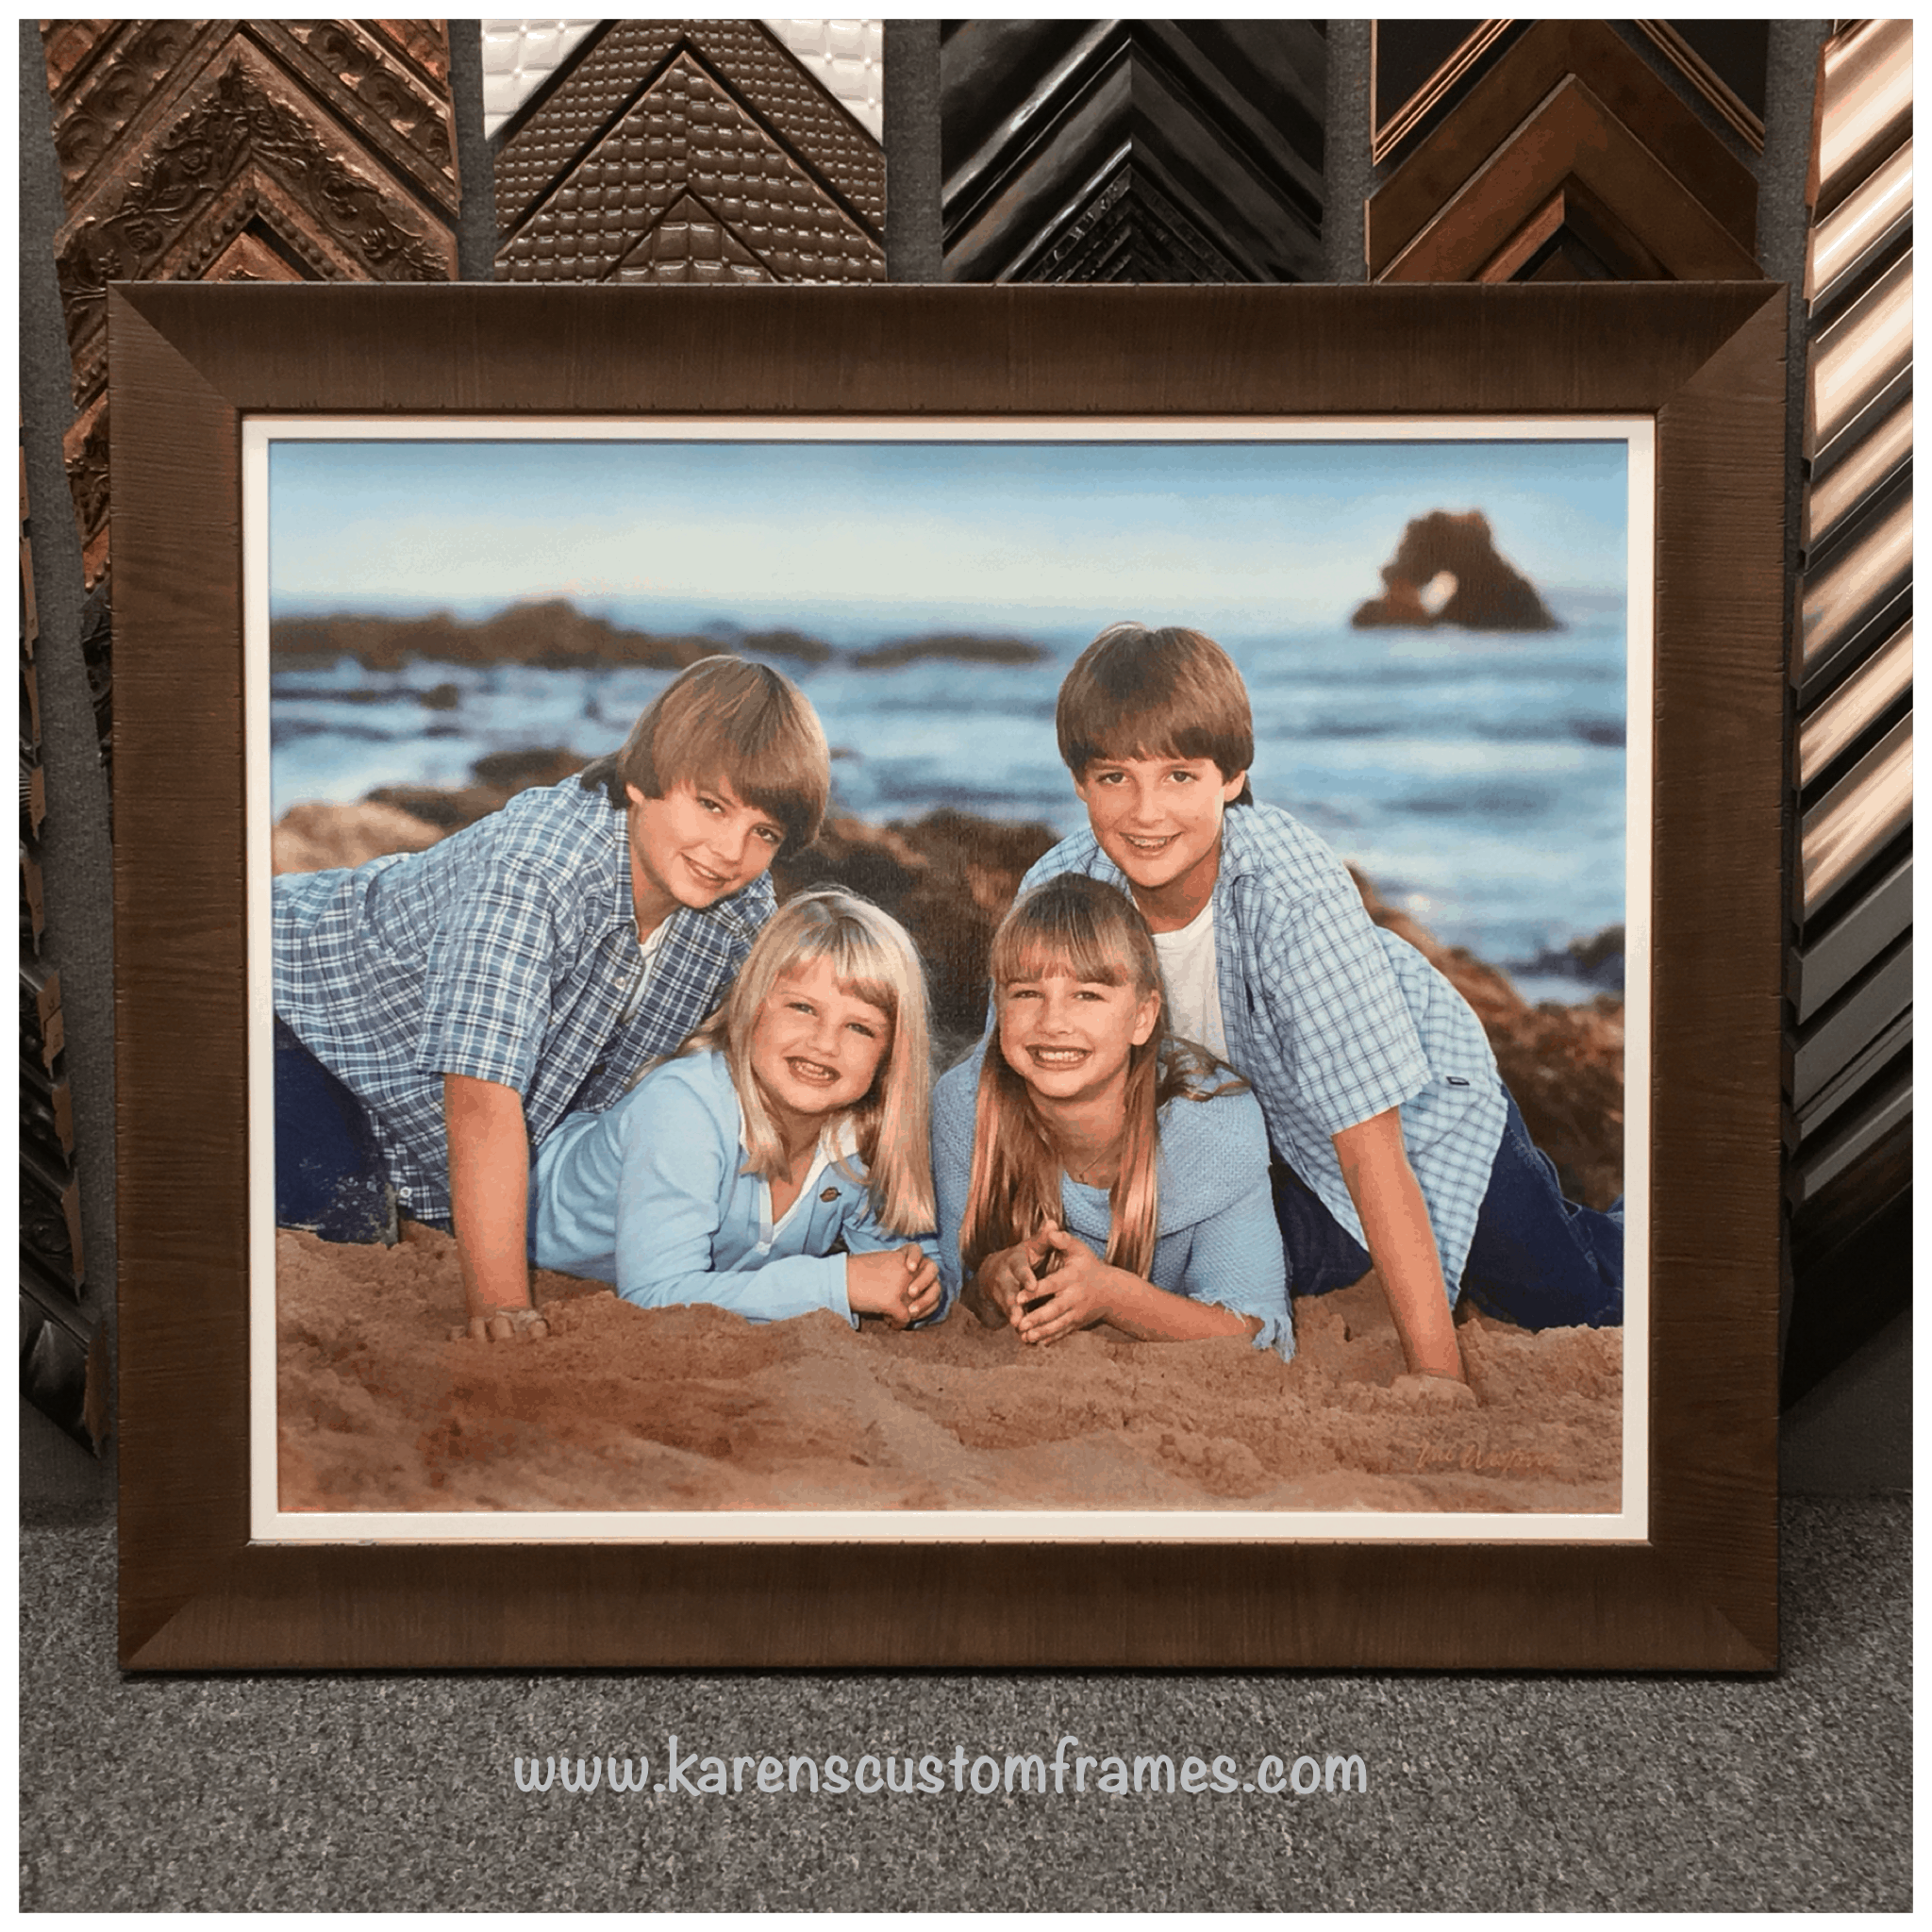 Family Photography | Custom Design and Framing by Karen's Detail Custom Frames, Orange County CA